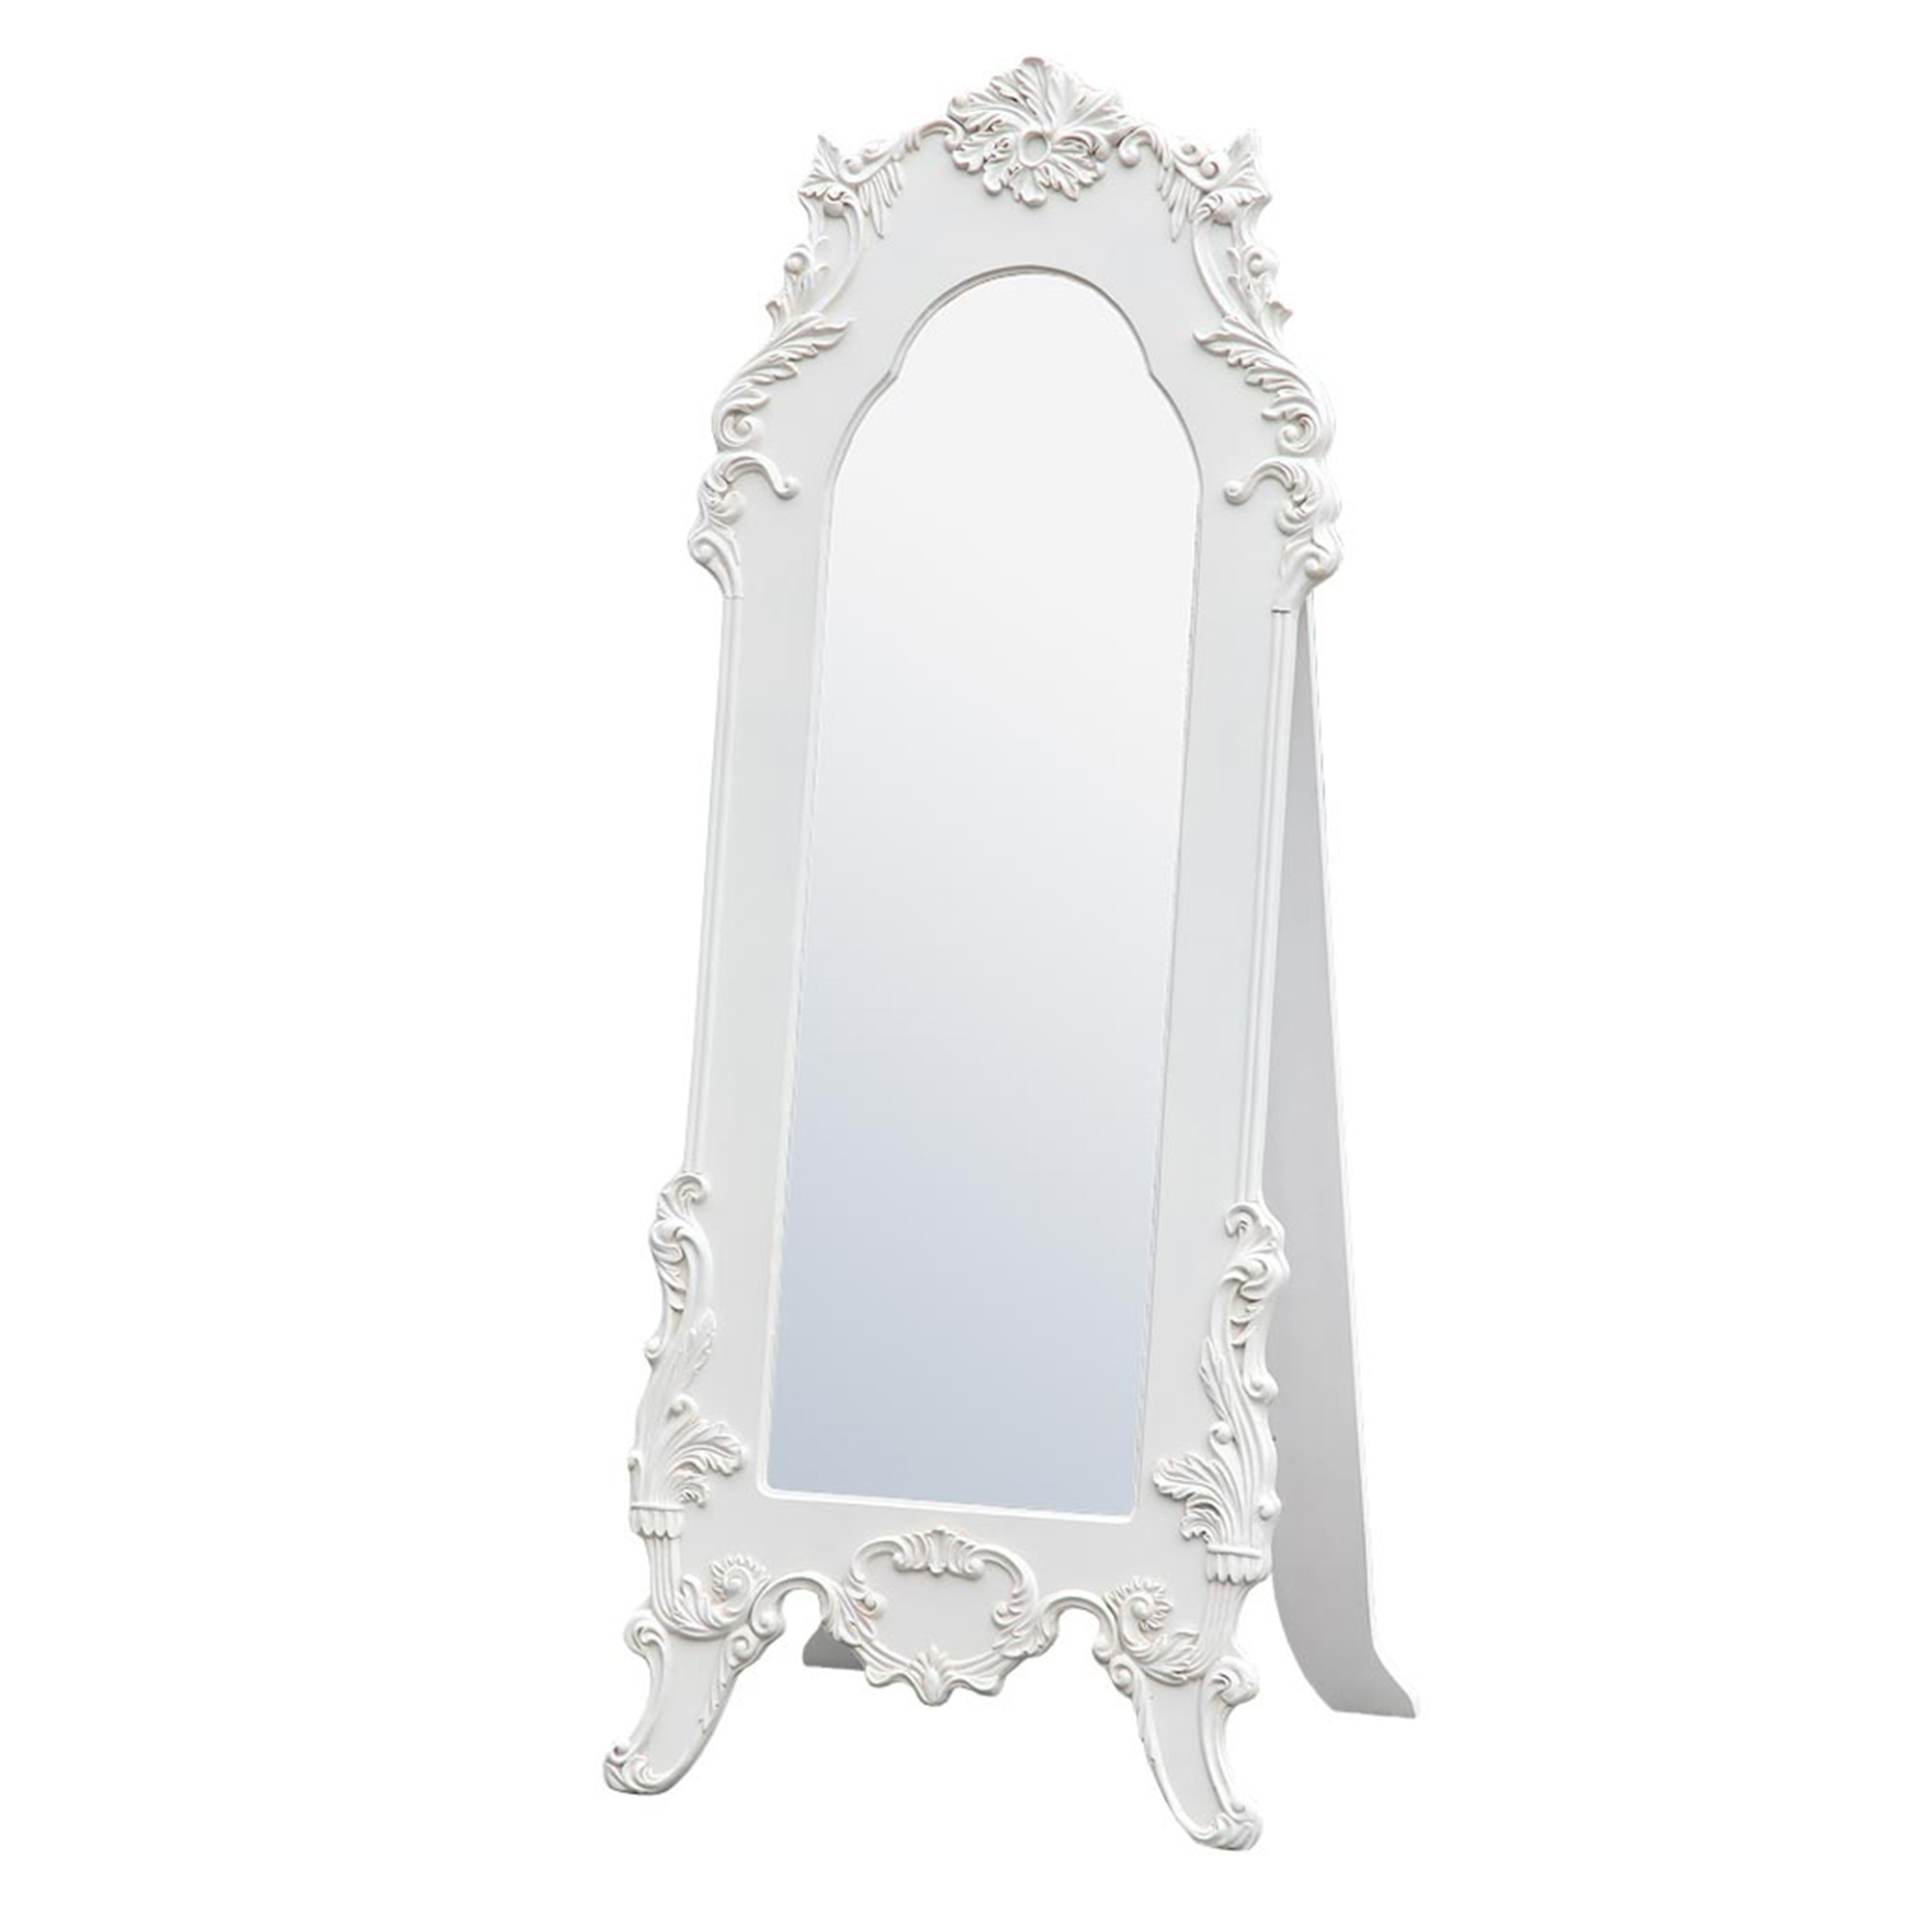 Rococo Provence Antique White Tall Full Length Freestanding Bedroom Mirror